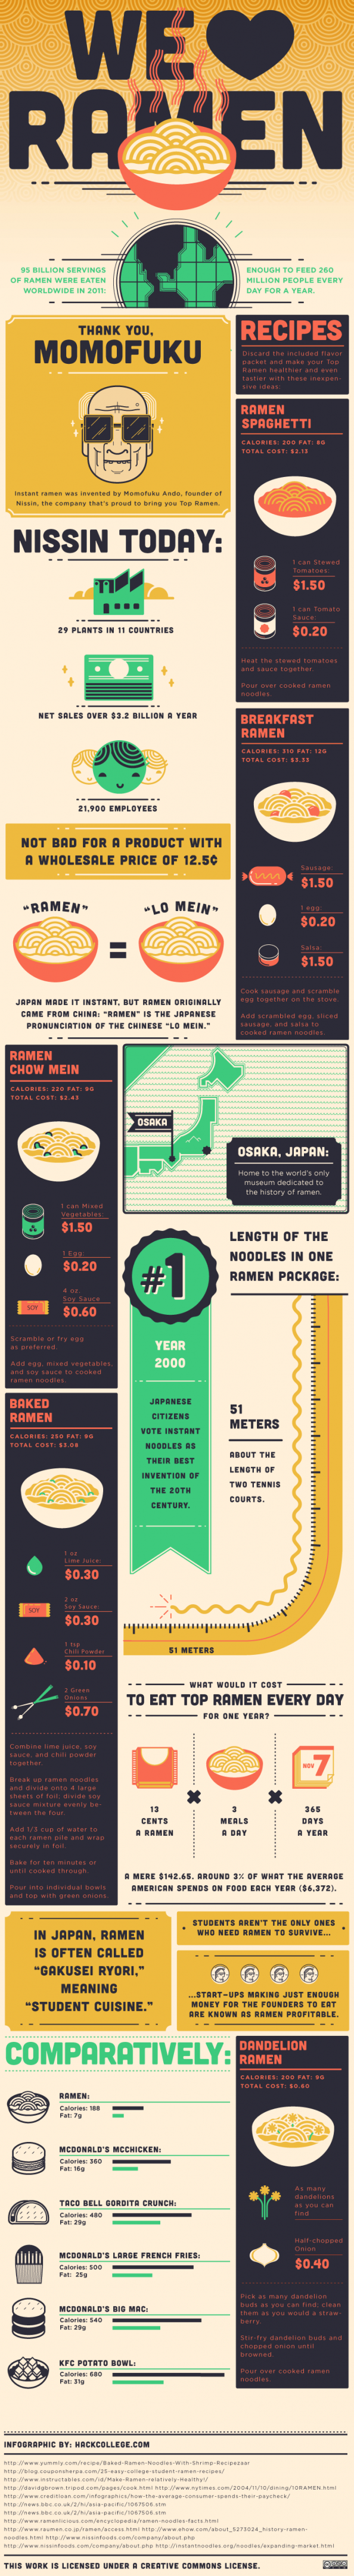 We Love Ramen Infographic